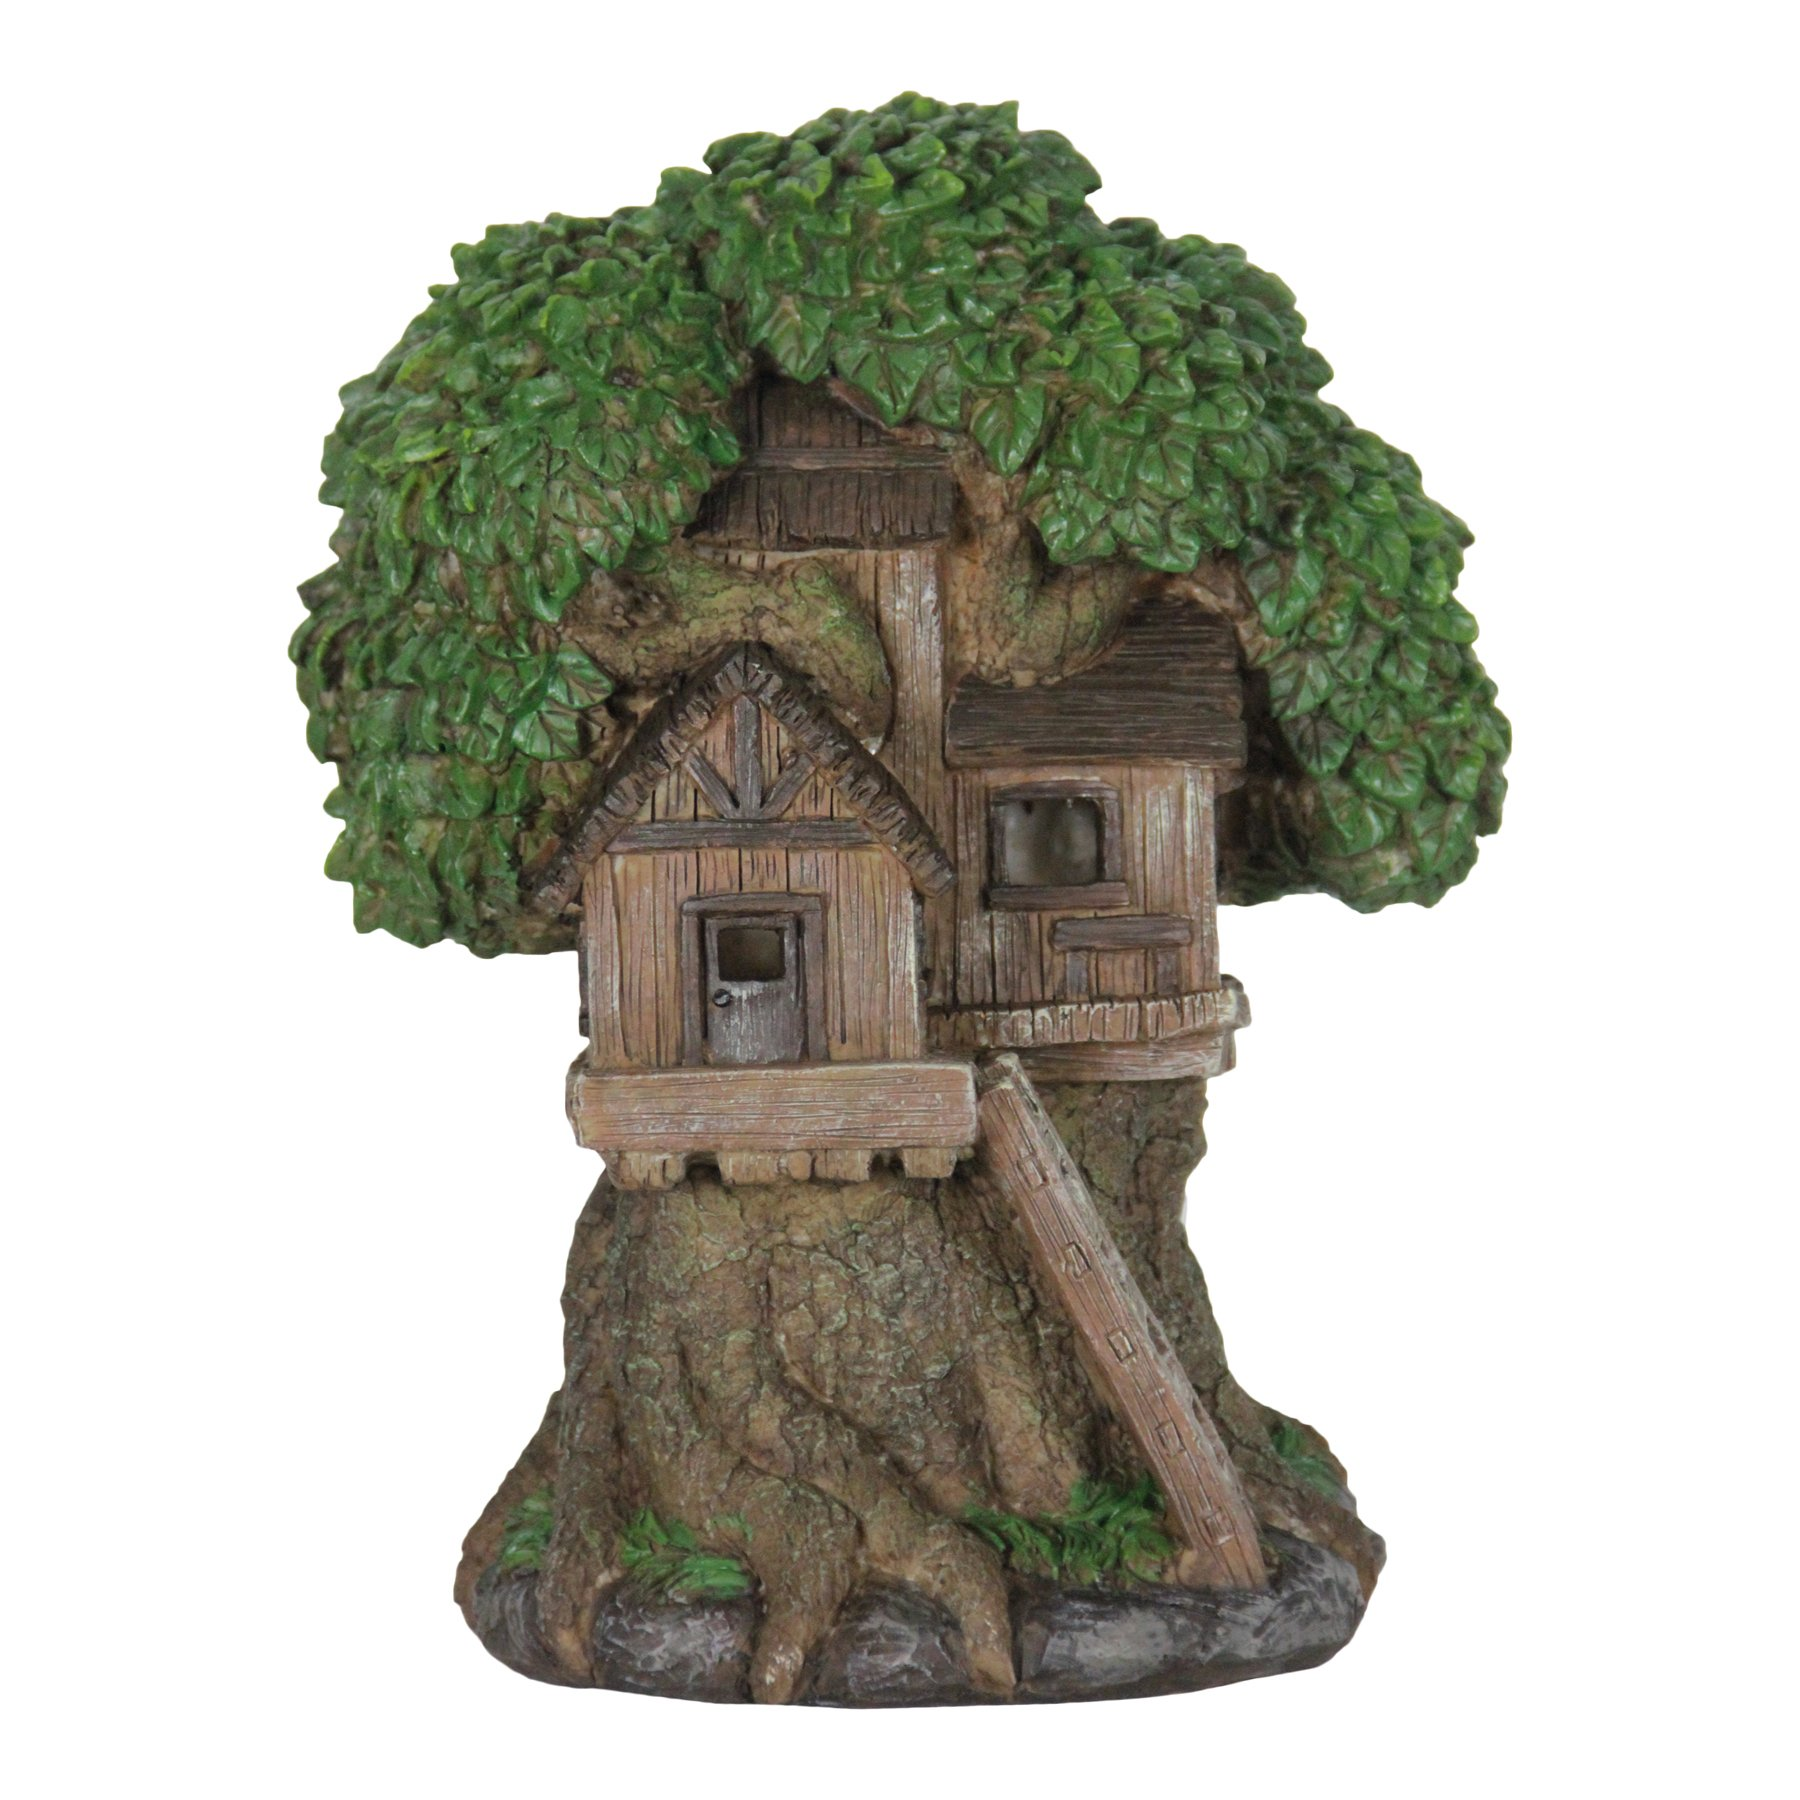 Exhart Thatched Roof Tree House w/Ladder Garden Decor - Fairy Cottage Garden Statue with Solar Powered Lights, Mini Tree House Resin Statue for a Magical Fairy Garden, 9'' L x 7'' W x 12'' H